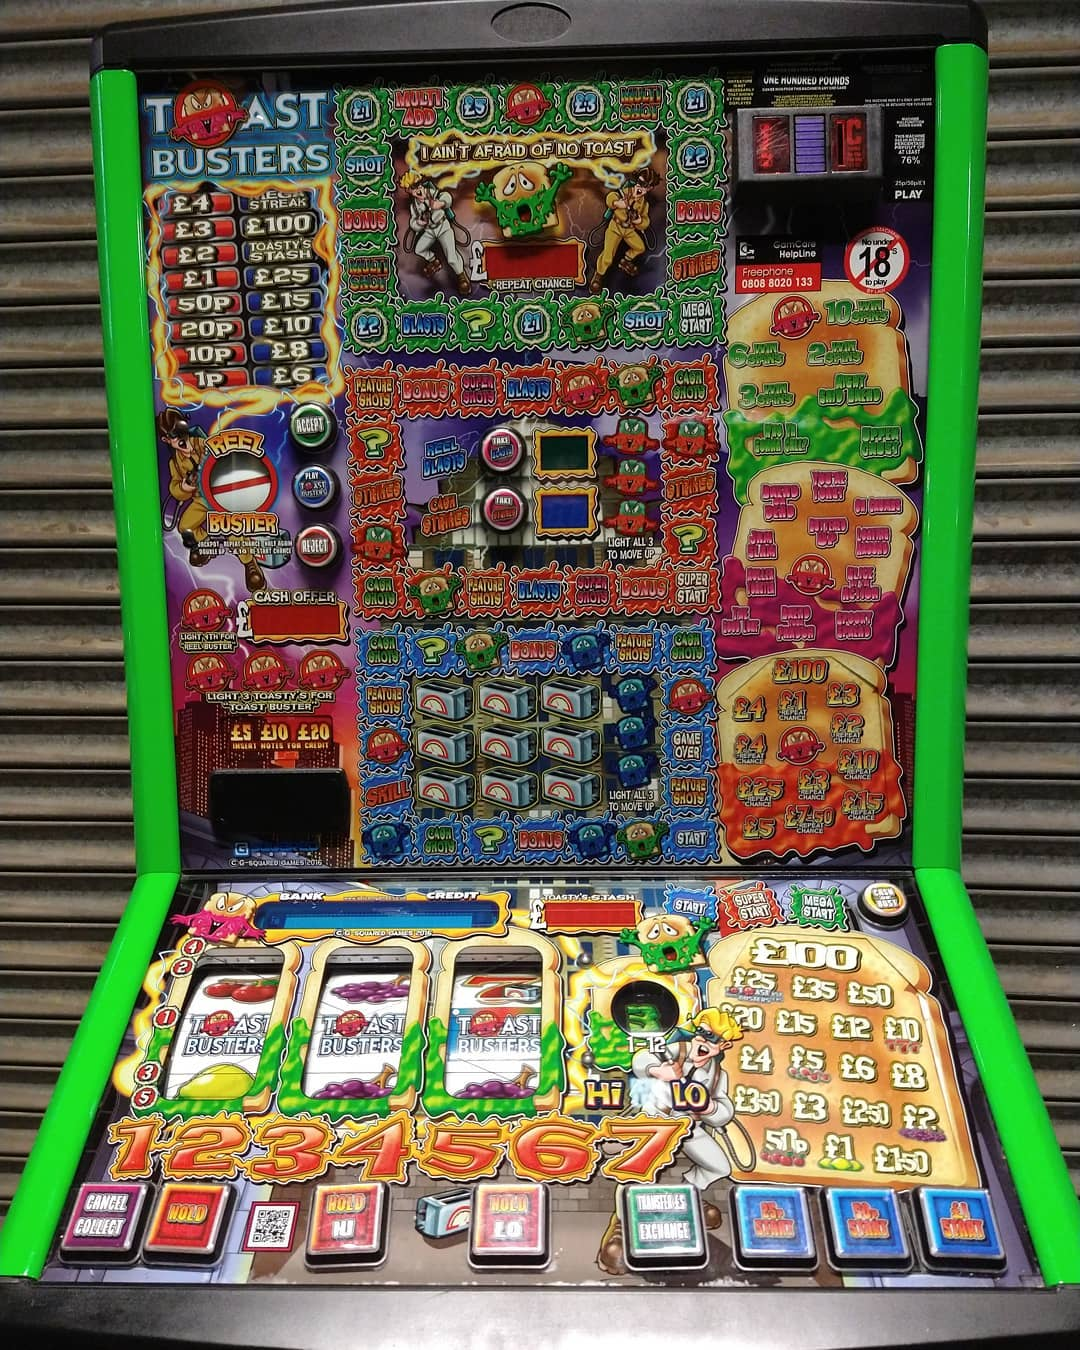 Toastbusters Fruit Machine